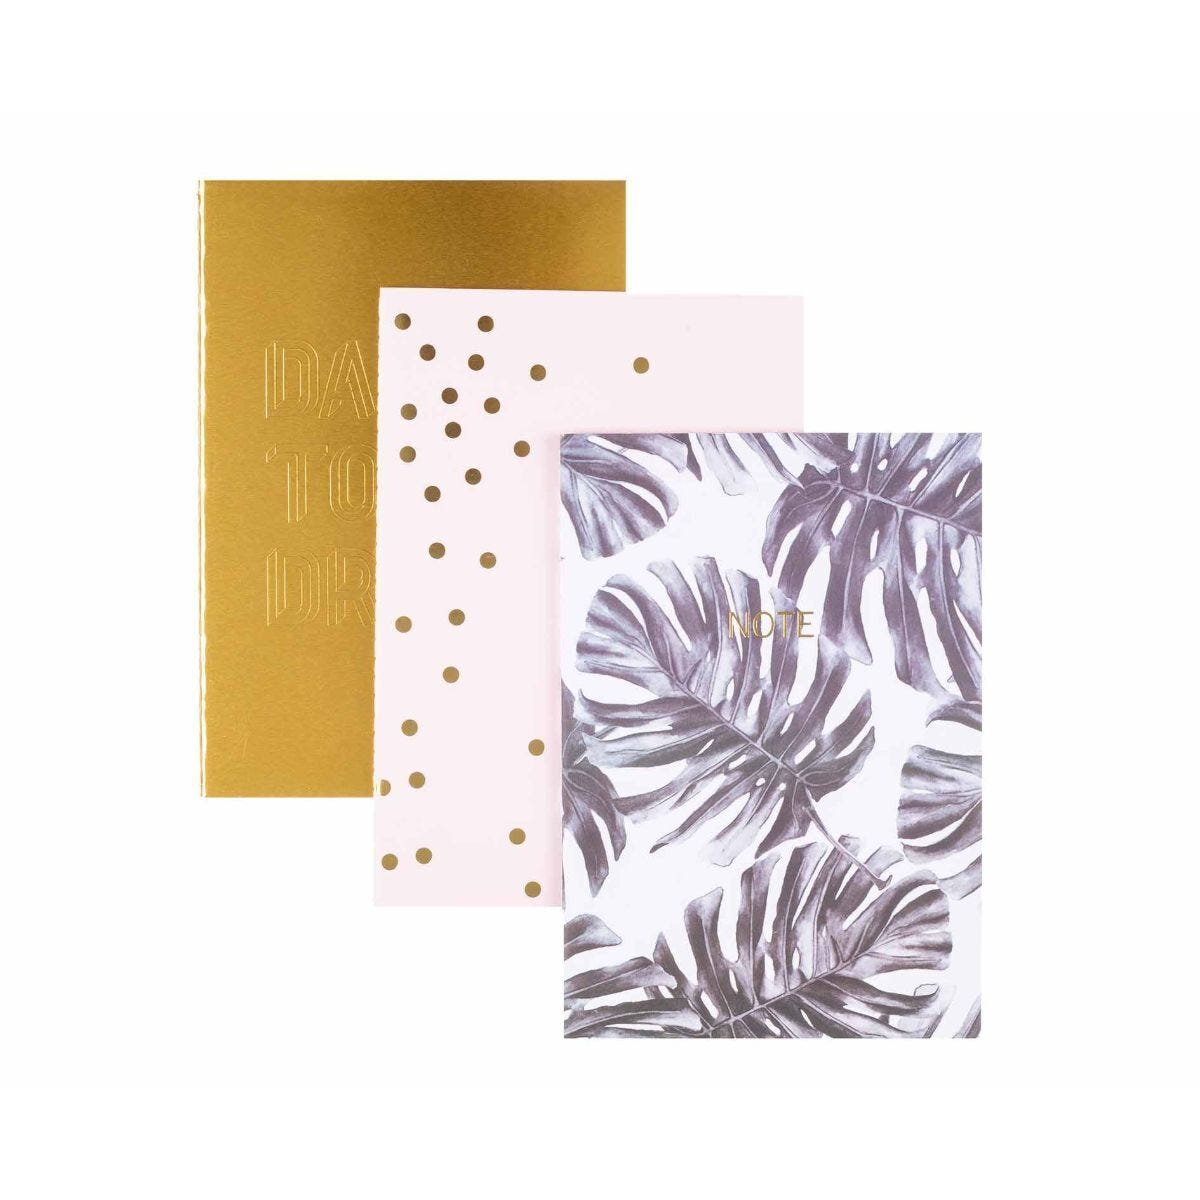 Ryman Multicolour A5 Notebook Pack of 3